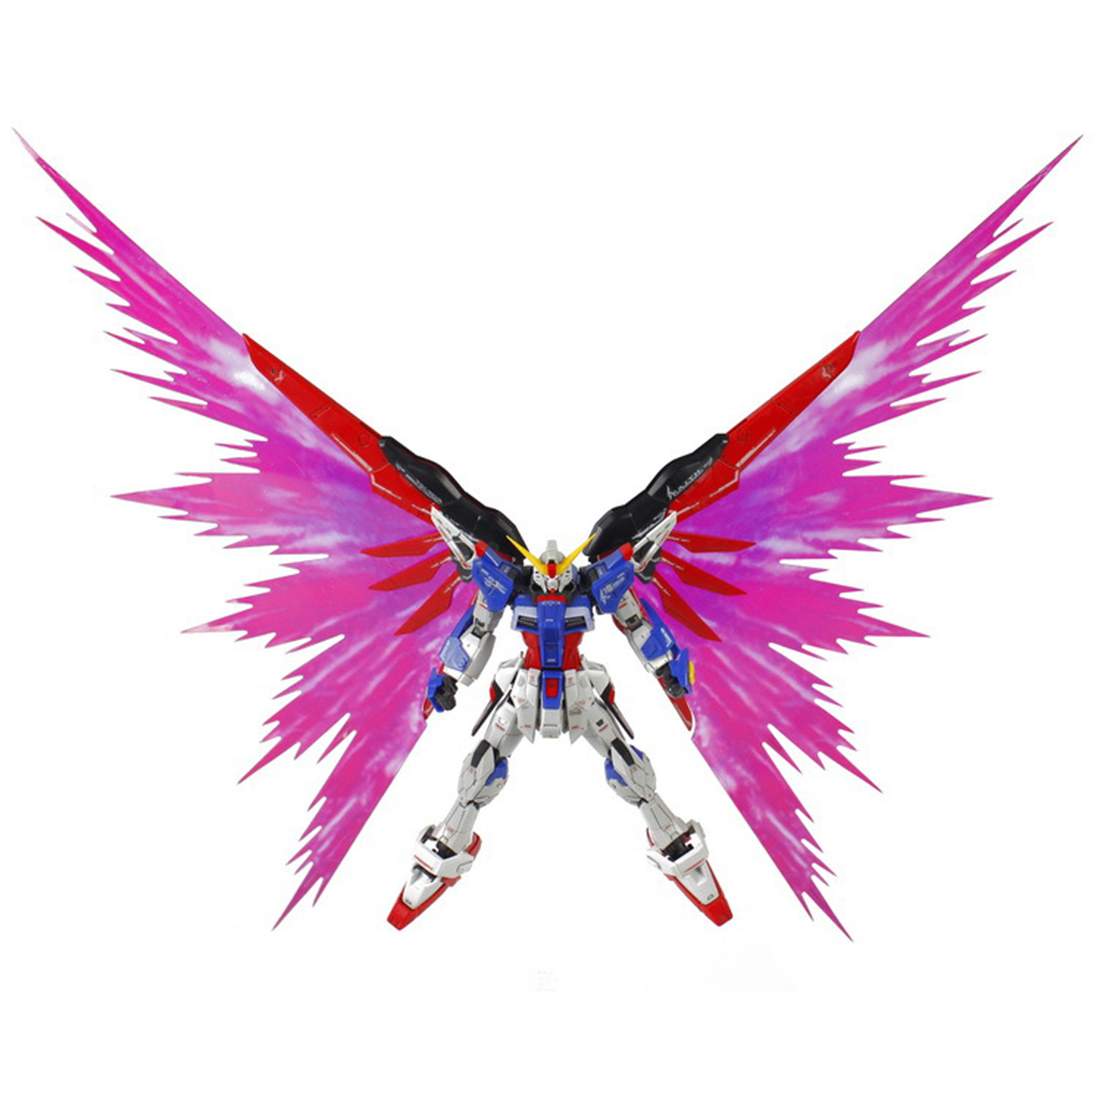 Light Wings Decoration Light Wing Special Effects For RG 1/144 For DESTINY For GUNDAM Action & Toy Figure 2019 New